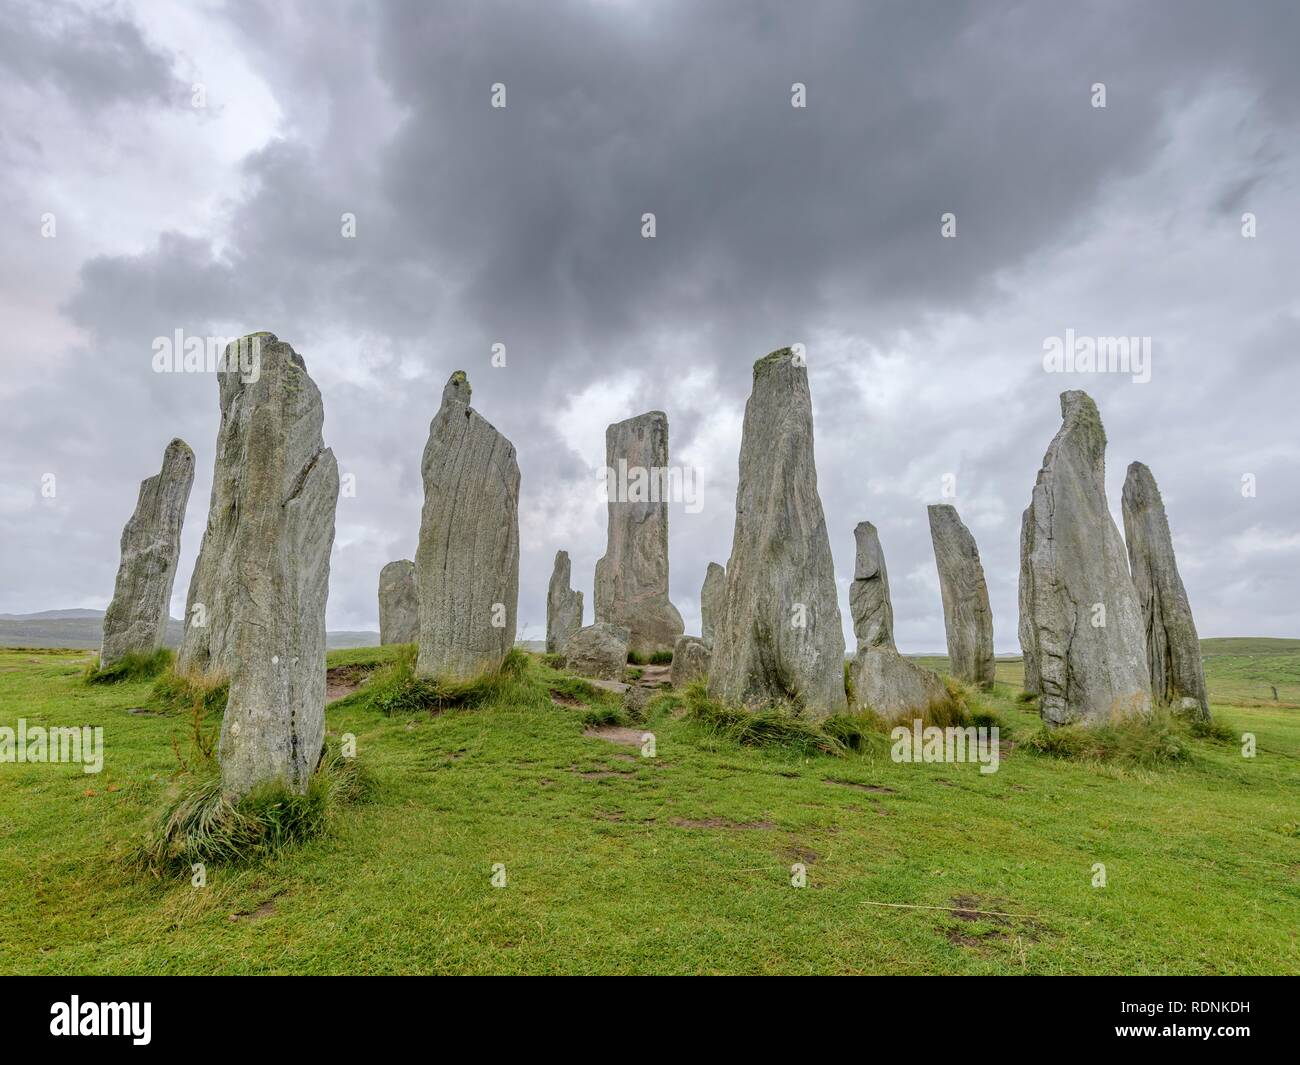 Callanish Standing Stones, Calanais, Lewis and Harris, Outer Hebrides, Scotland, United Kingdom - Stock Image